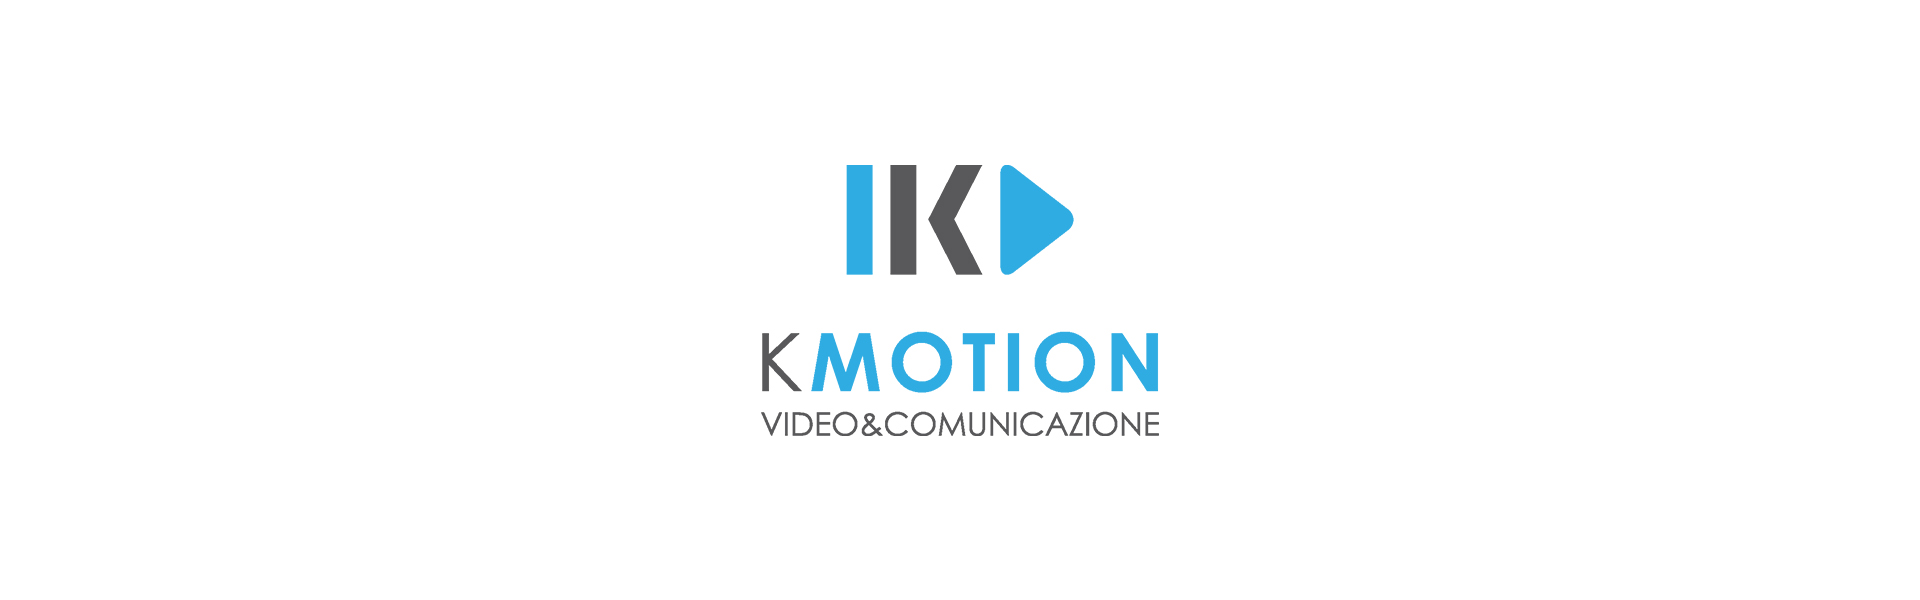 Loomen Comunicazione Web e Social Media Marketing KMotion Partnership